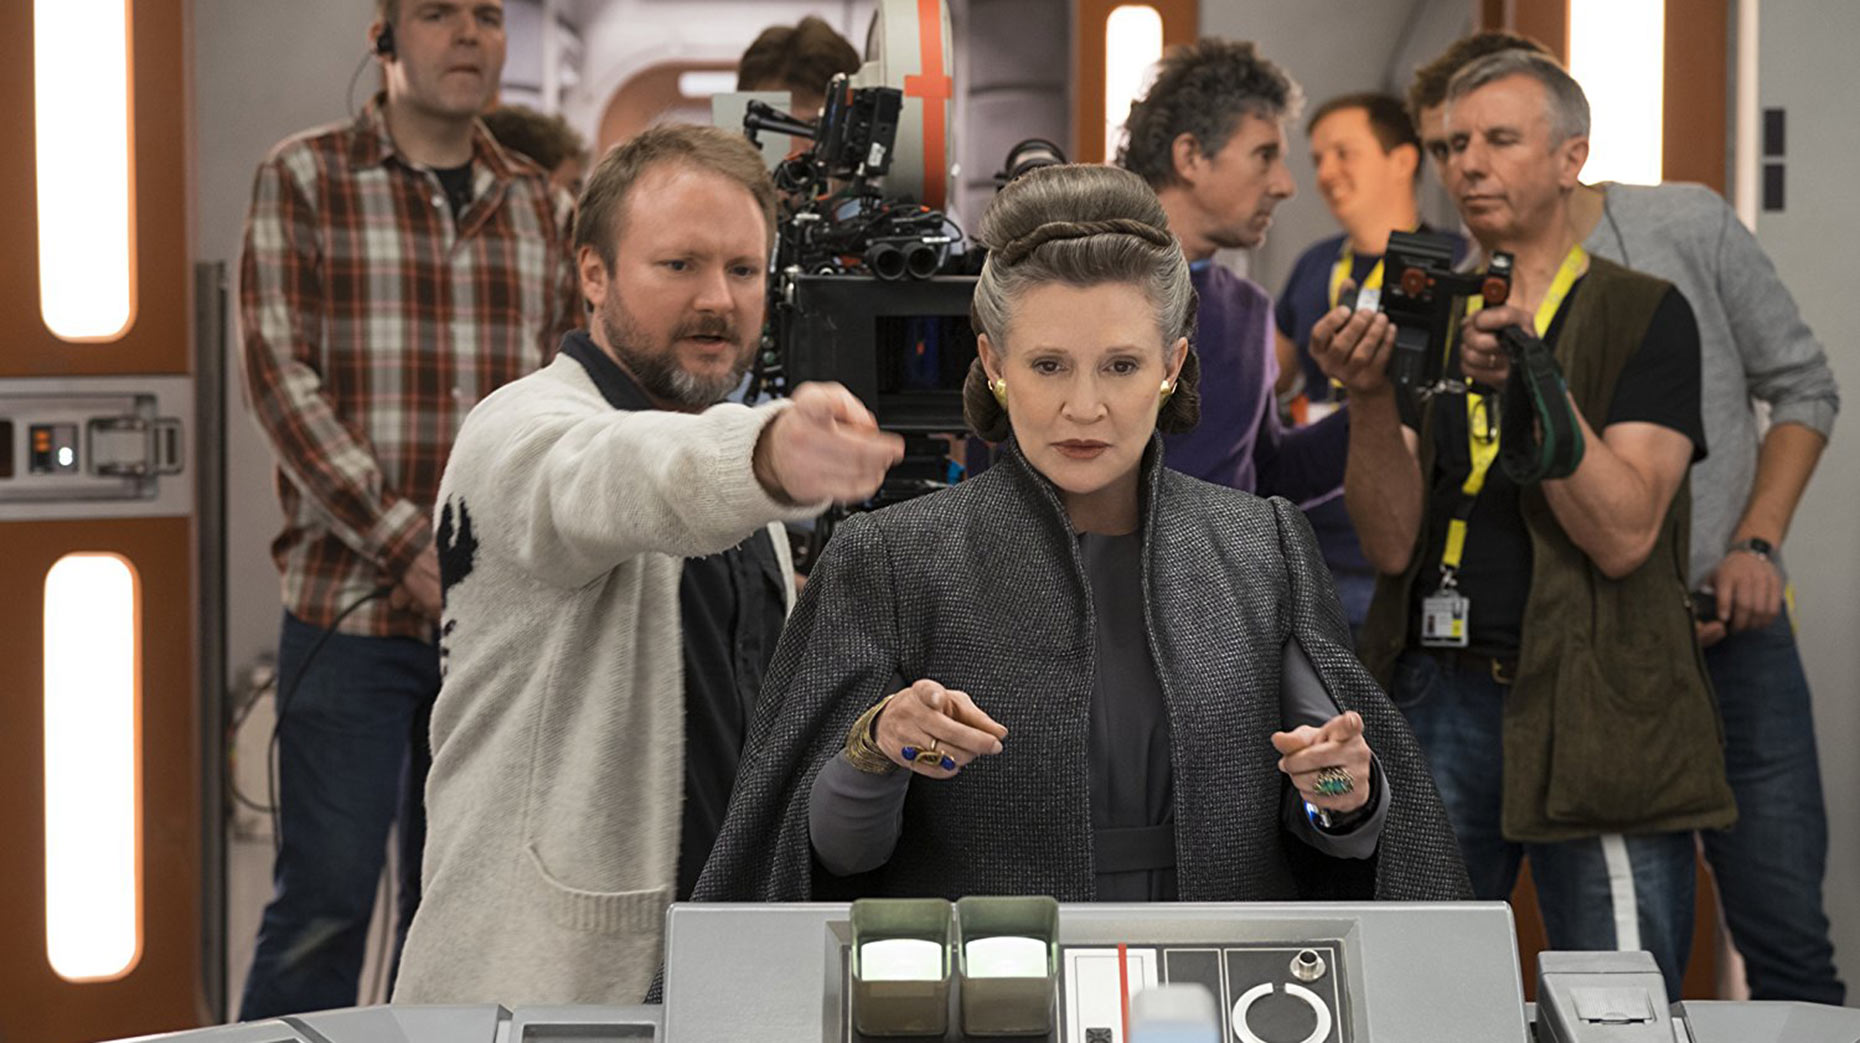 'The Last Jedi': Saying goodbye to Carrie Fisher's Leia